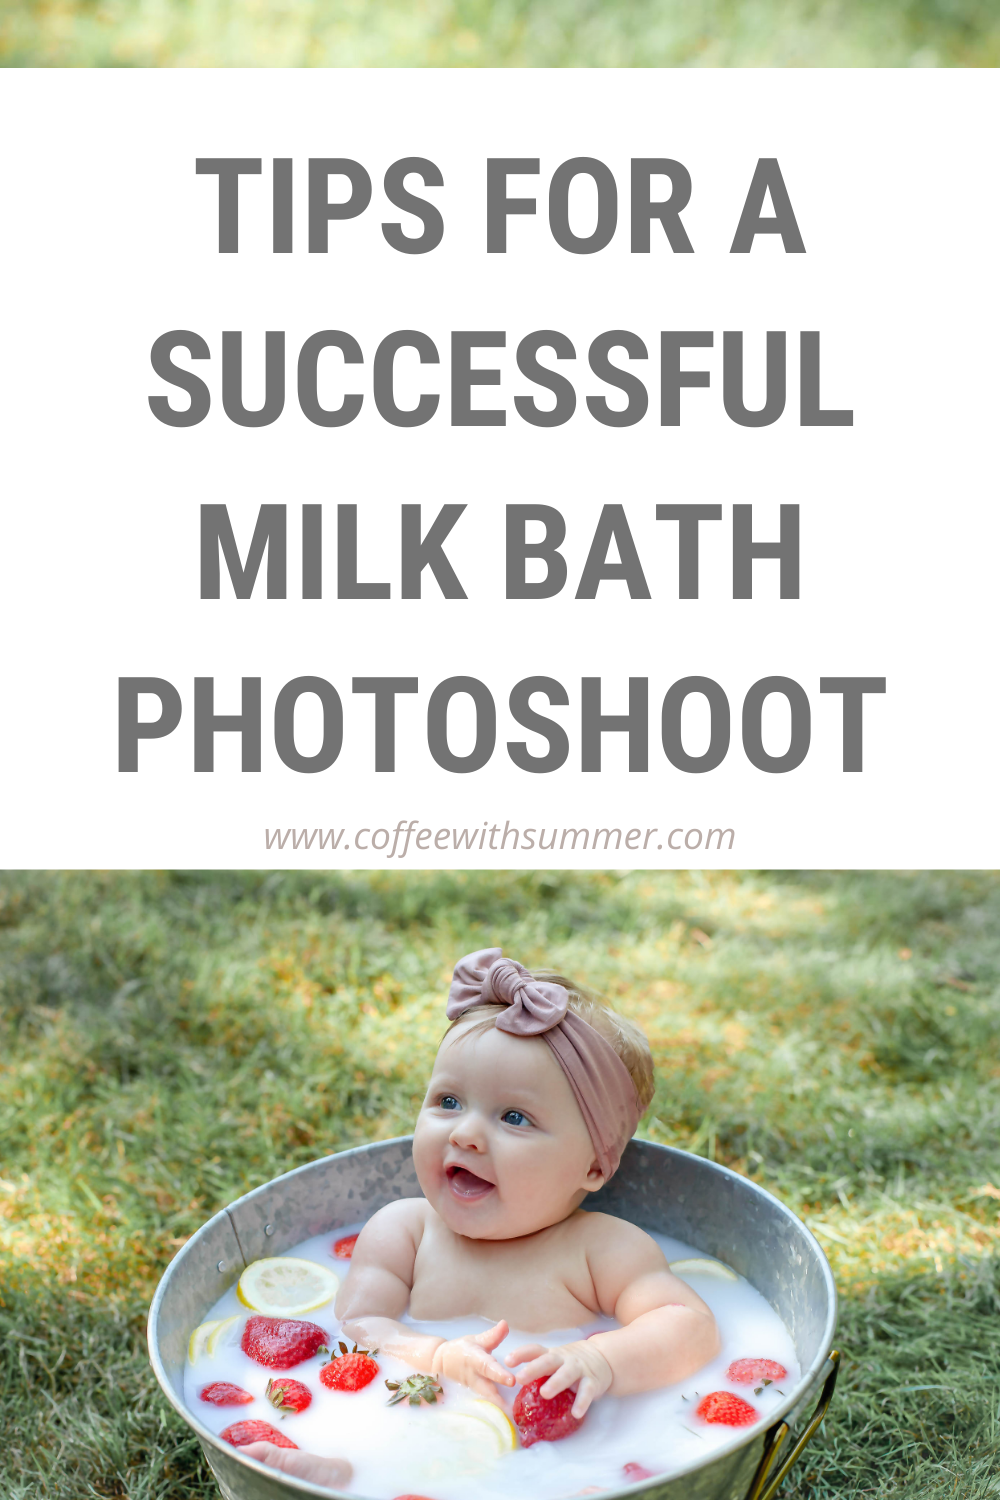 Tips For A Milk Bath Photoshoot